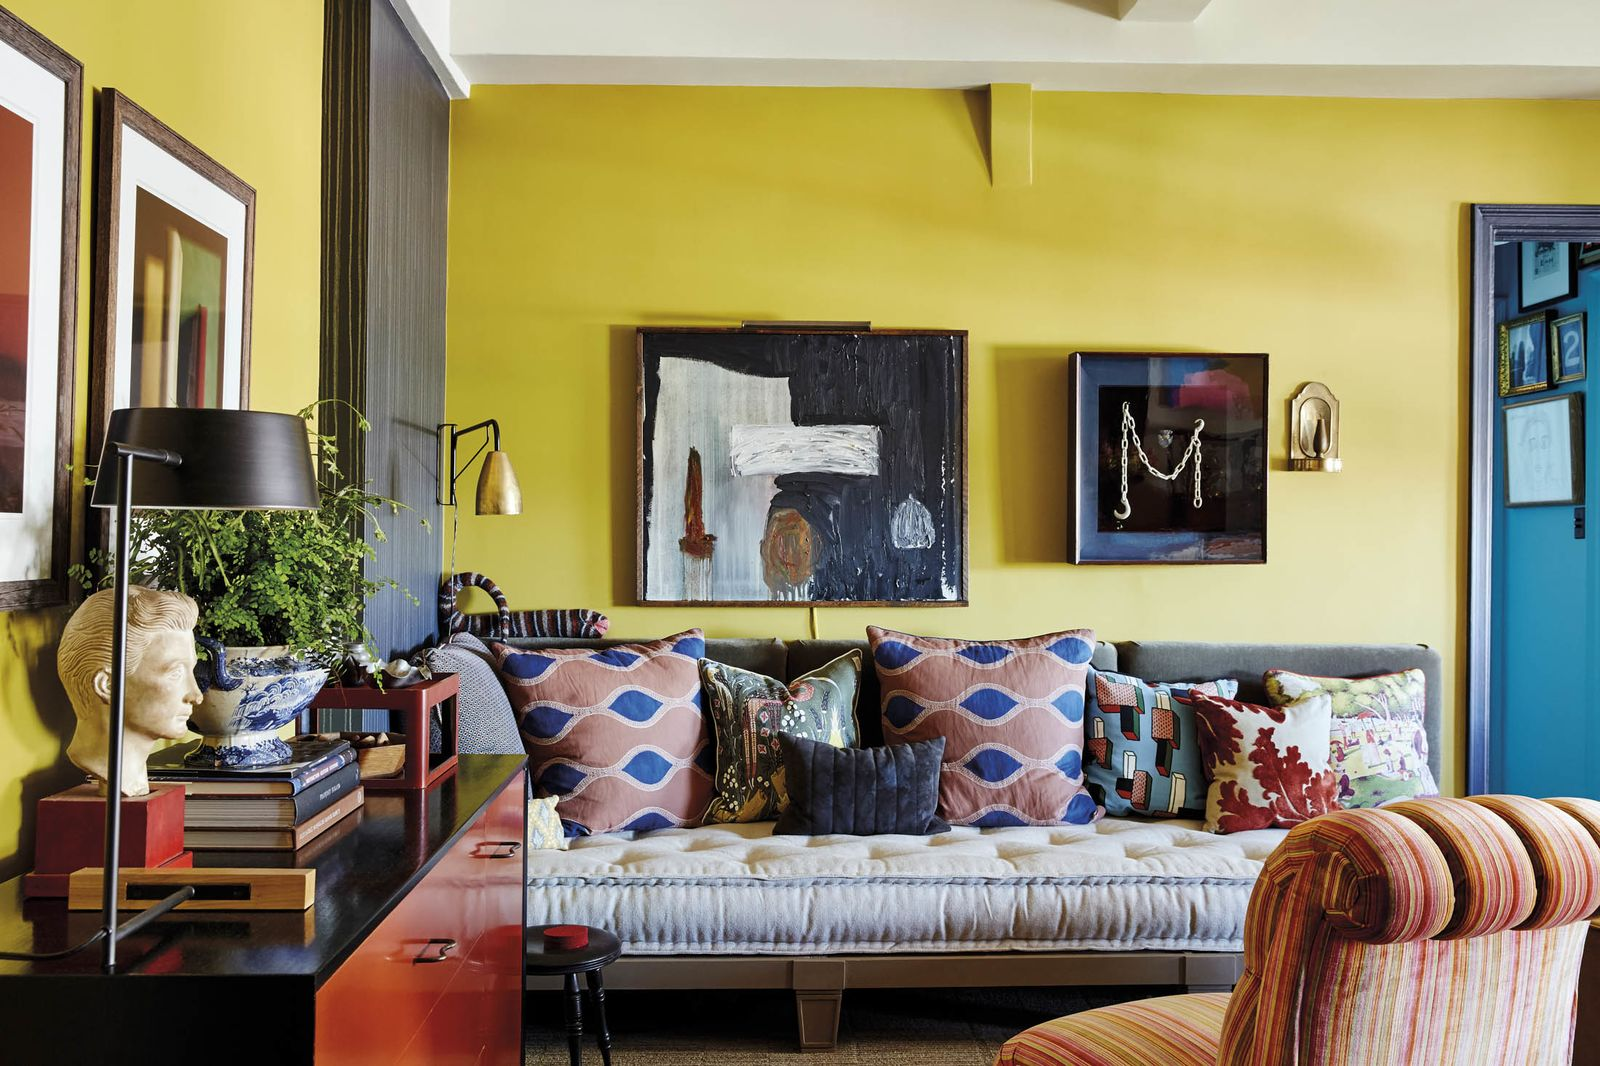 Eve Ashcraft and Heather Smith MacIsaac's living room